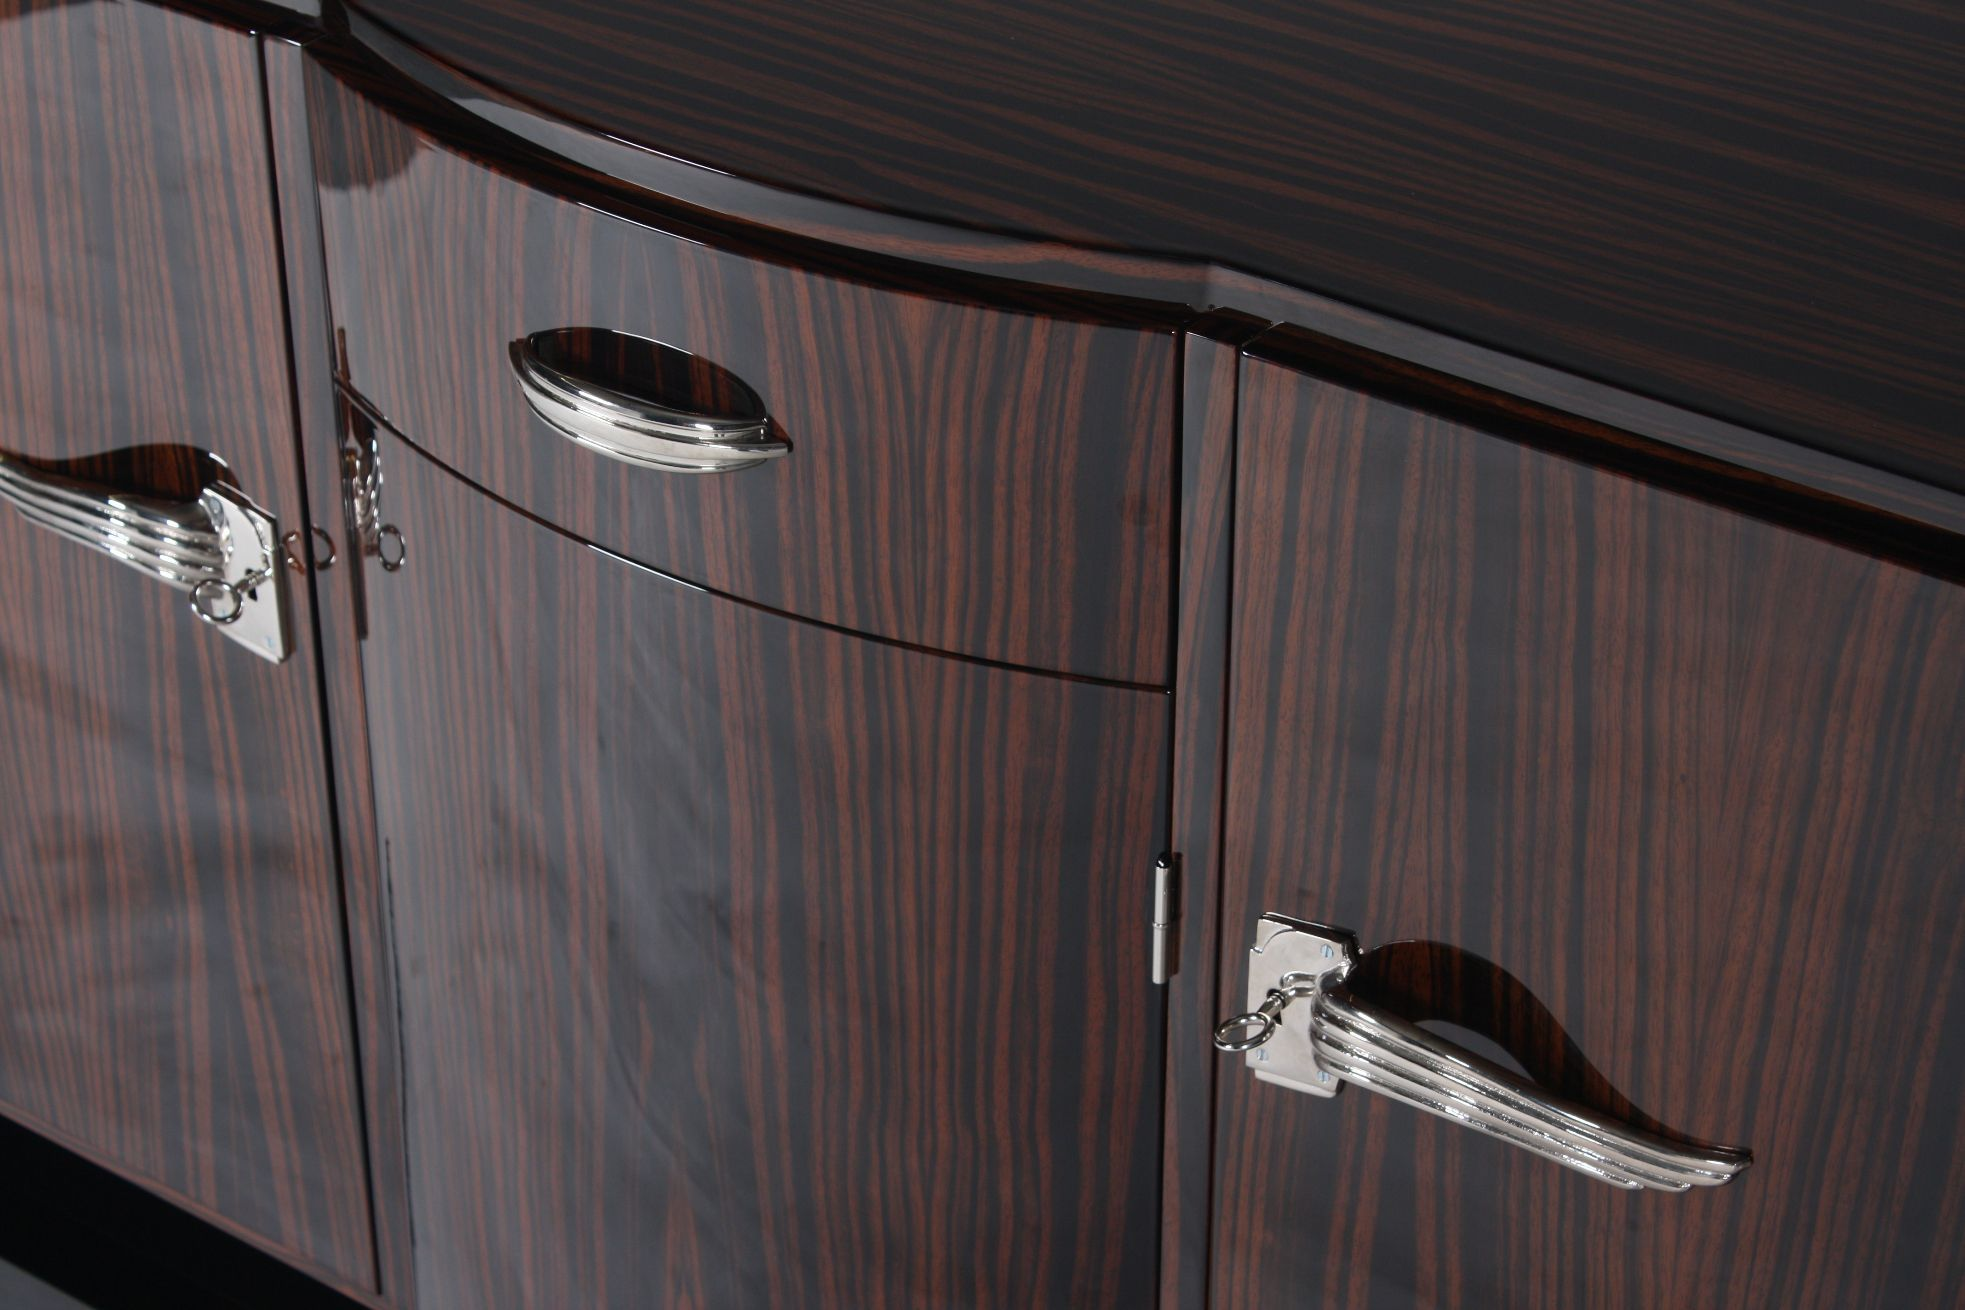 Art Deco Sideboard / Macassar Ebony / Glossy Lacquered Wood